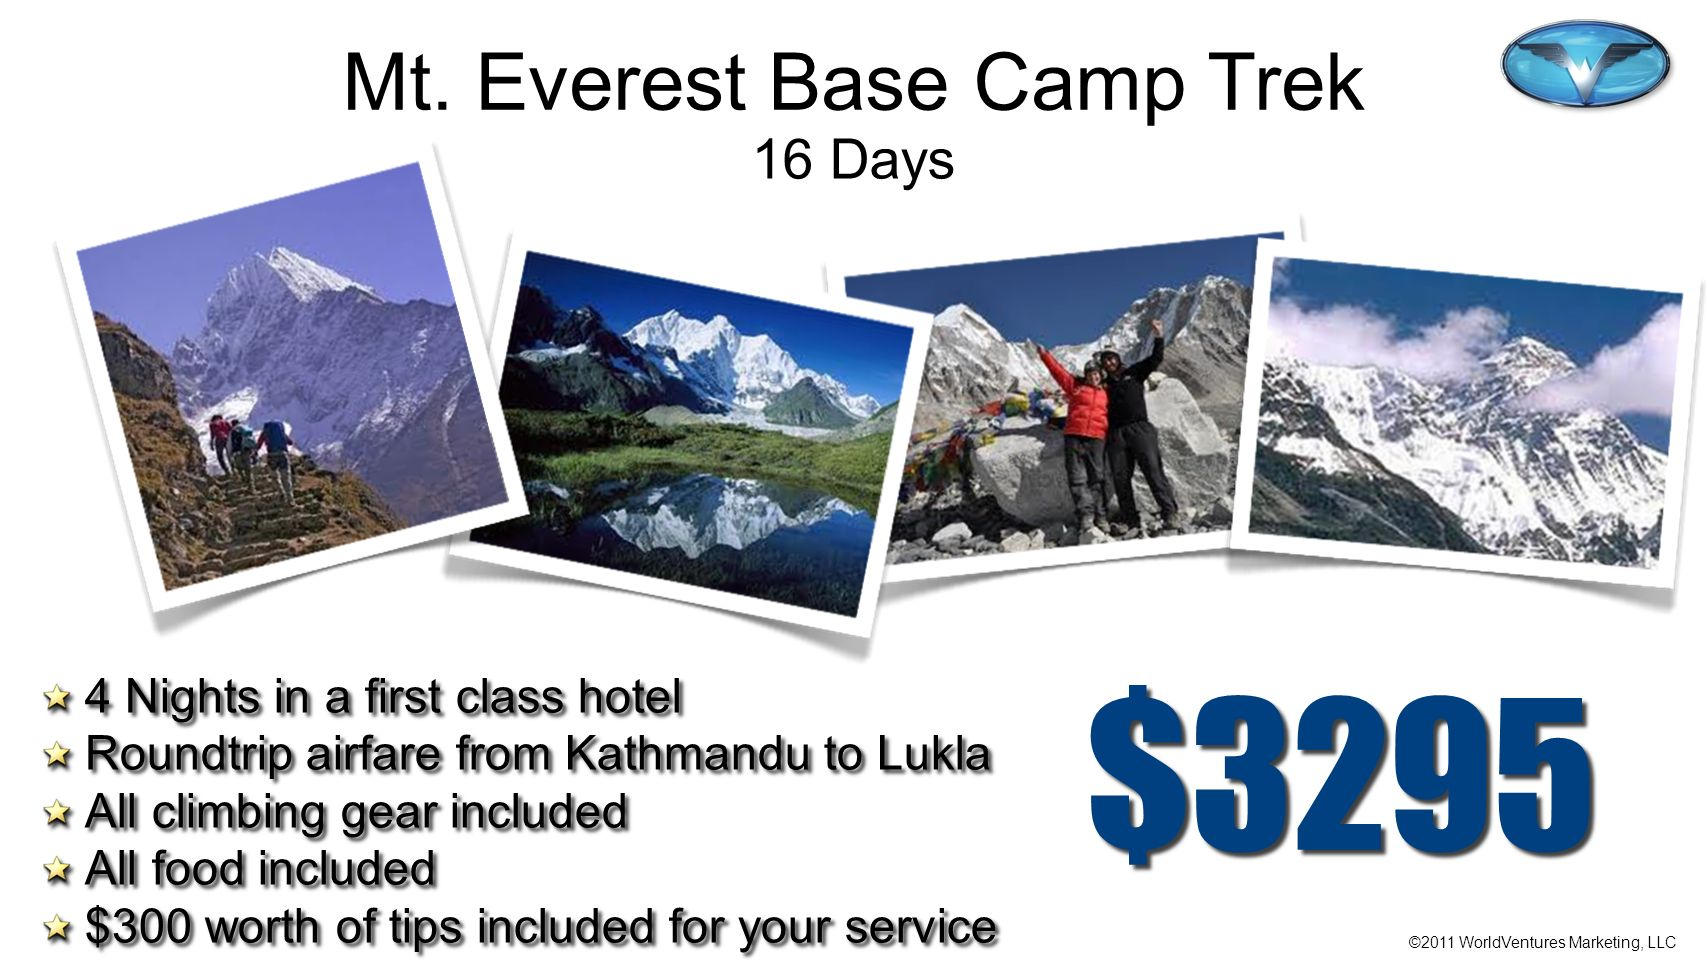 Mt. Everest Base Camp Trek